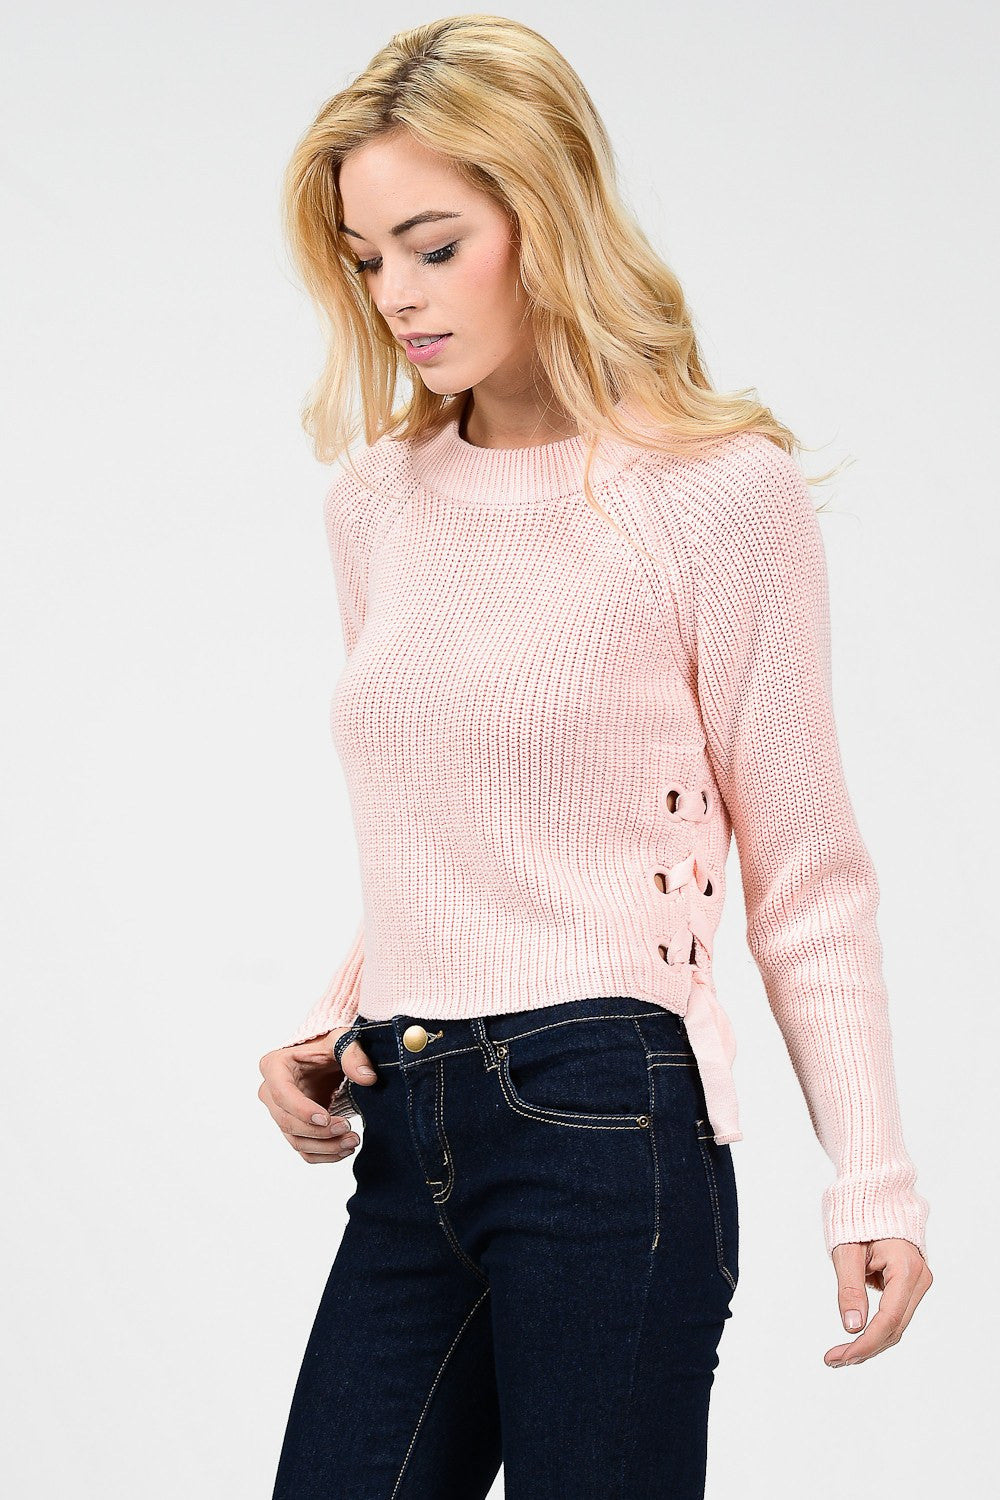 Blush Pink Knit Sweater with Side Ribbon Tie